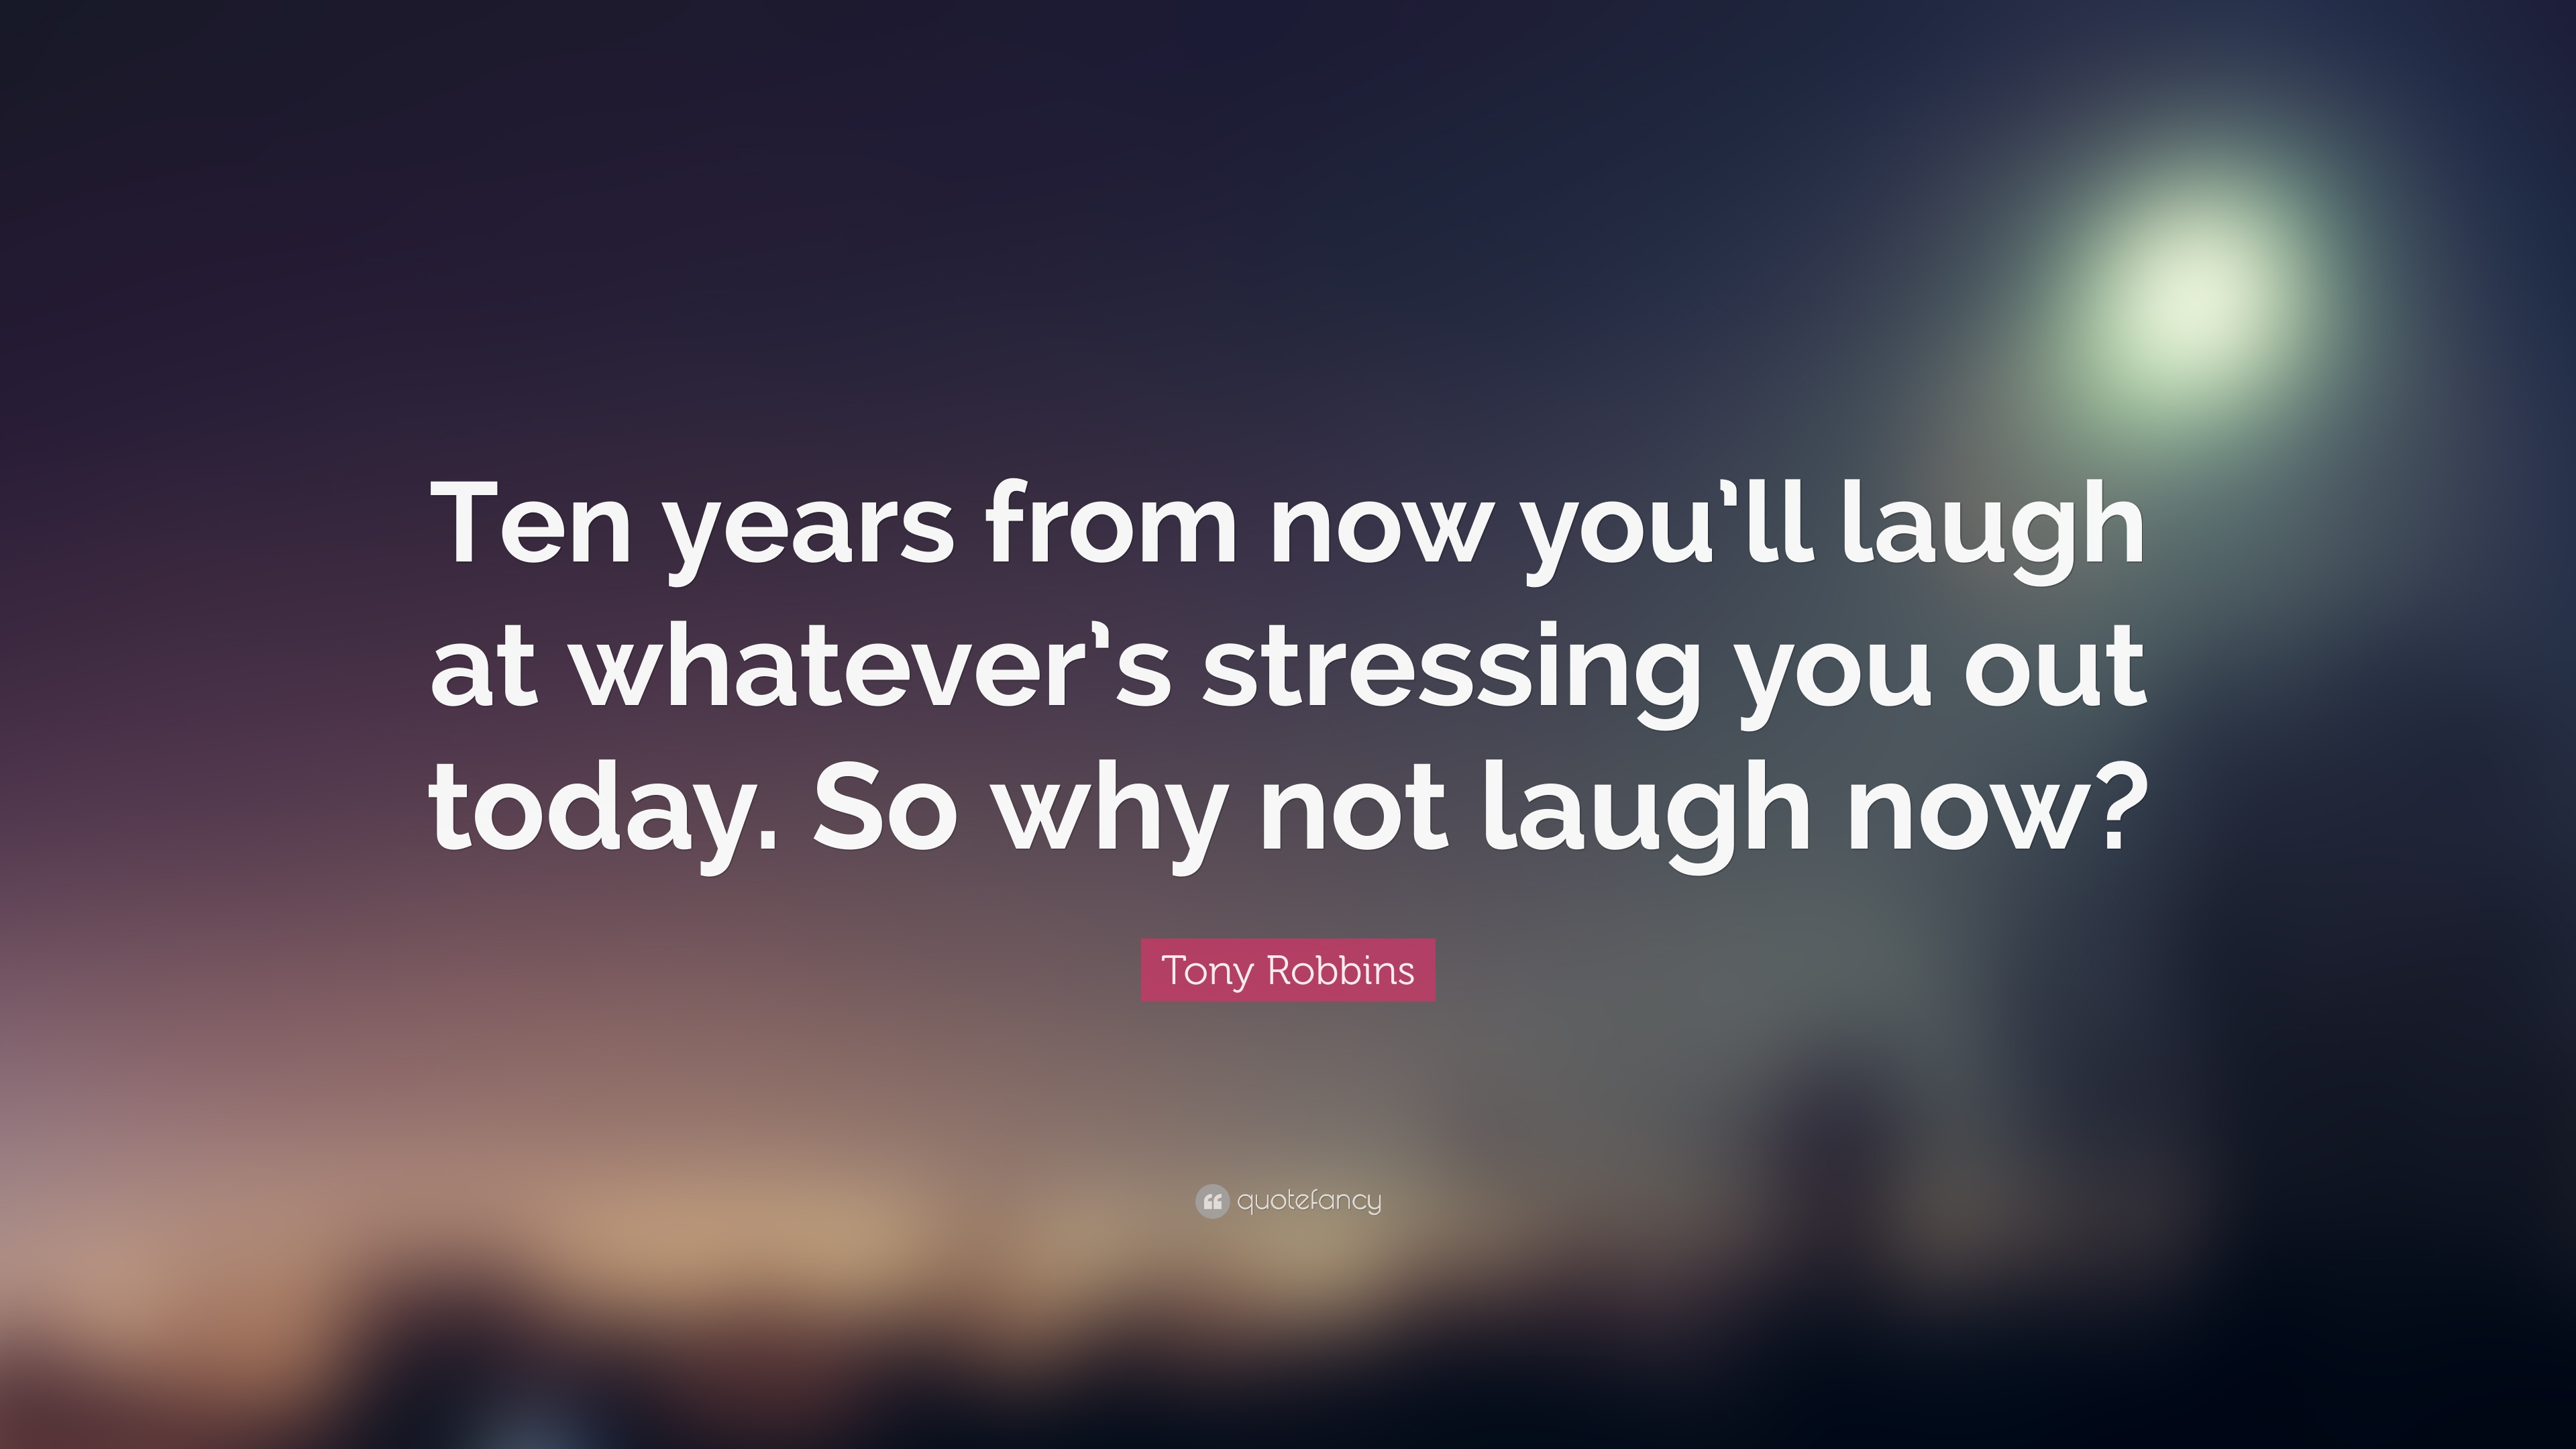 tony robbins quote ten years from now you ll laugh at whatever s tony robbins quote ten years from now you ll laugh at whatever s stressing share 5